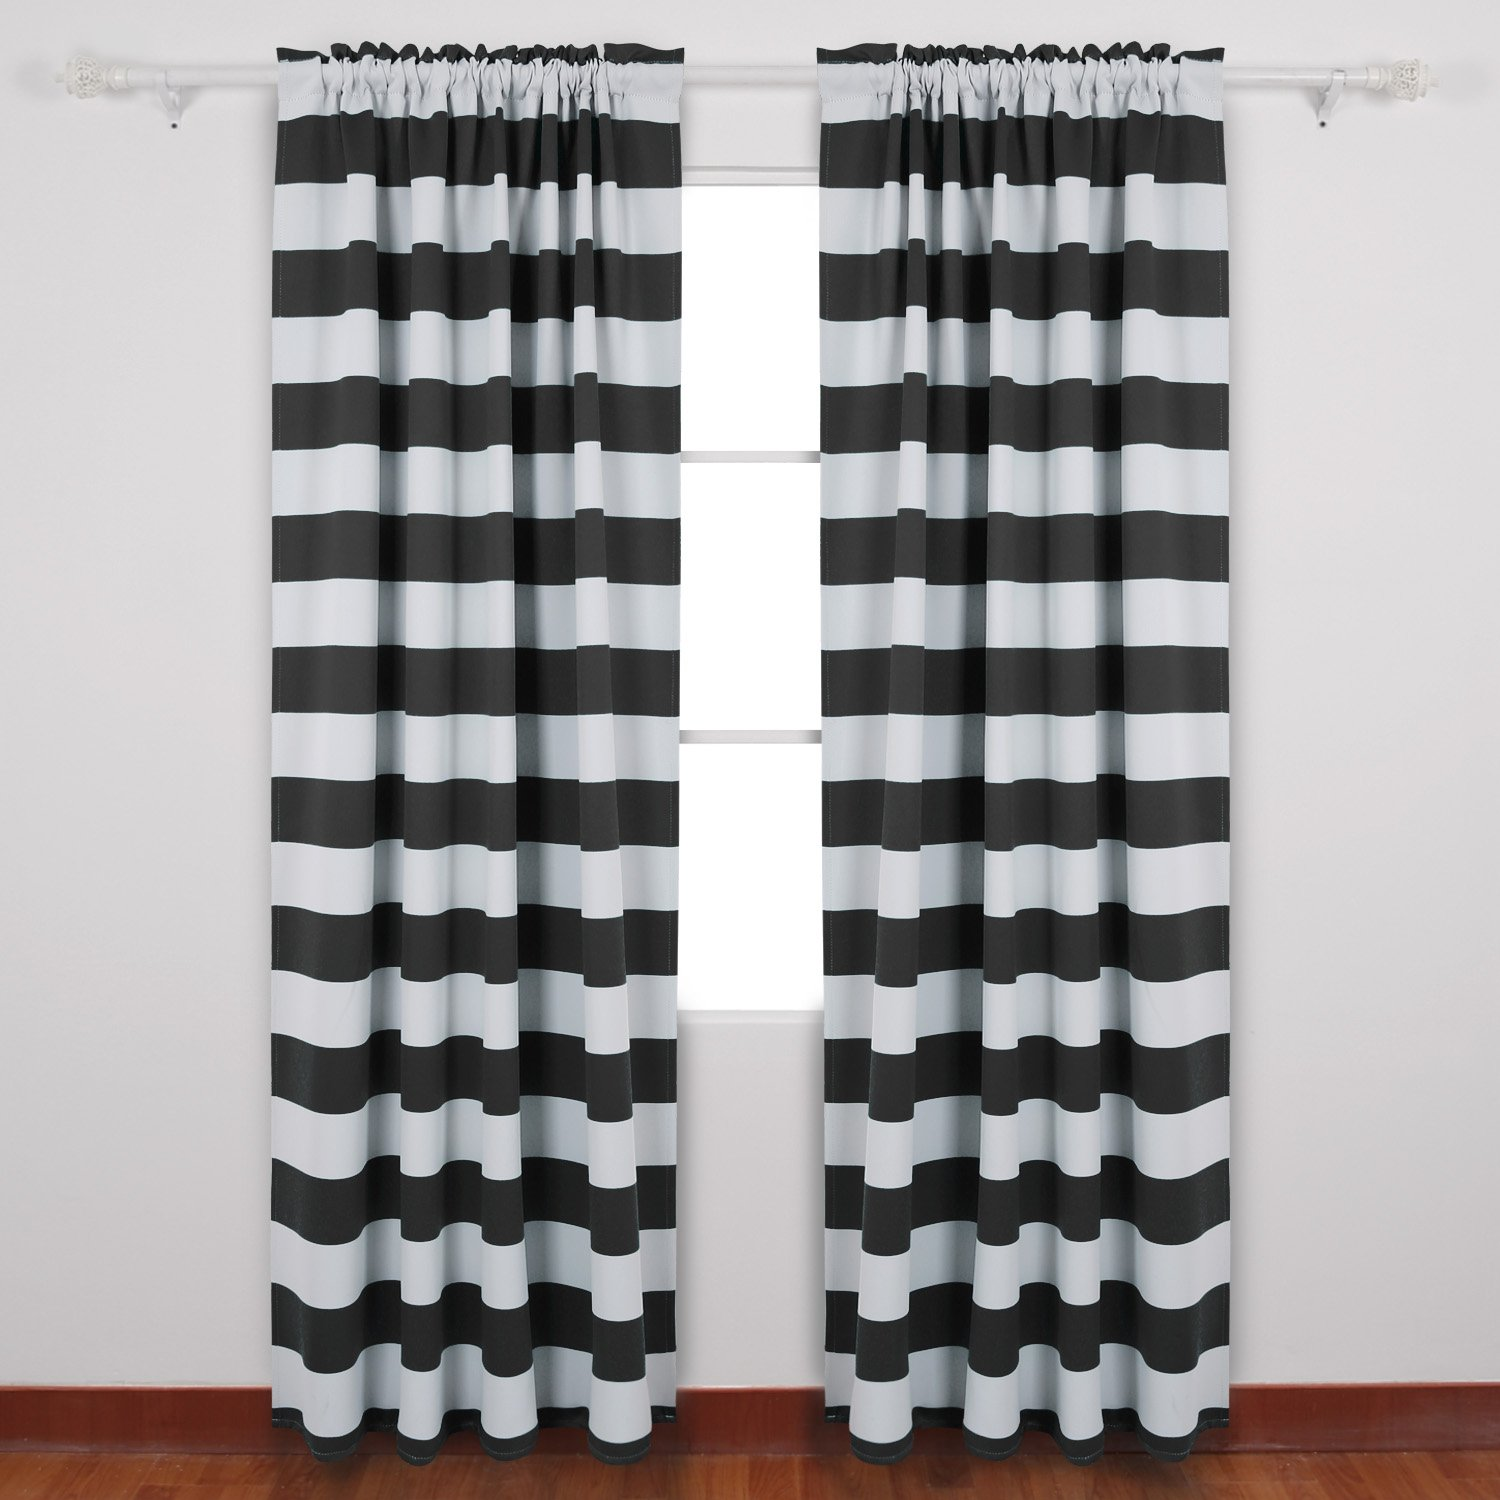 Black White Curtains Seasonal Sale Ease Bedding with Style